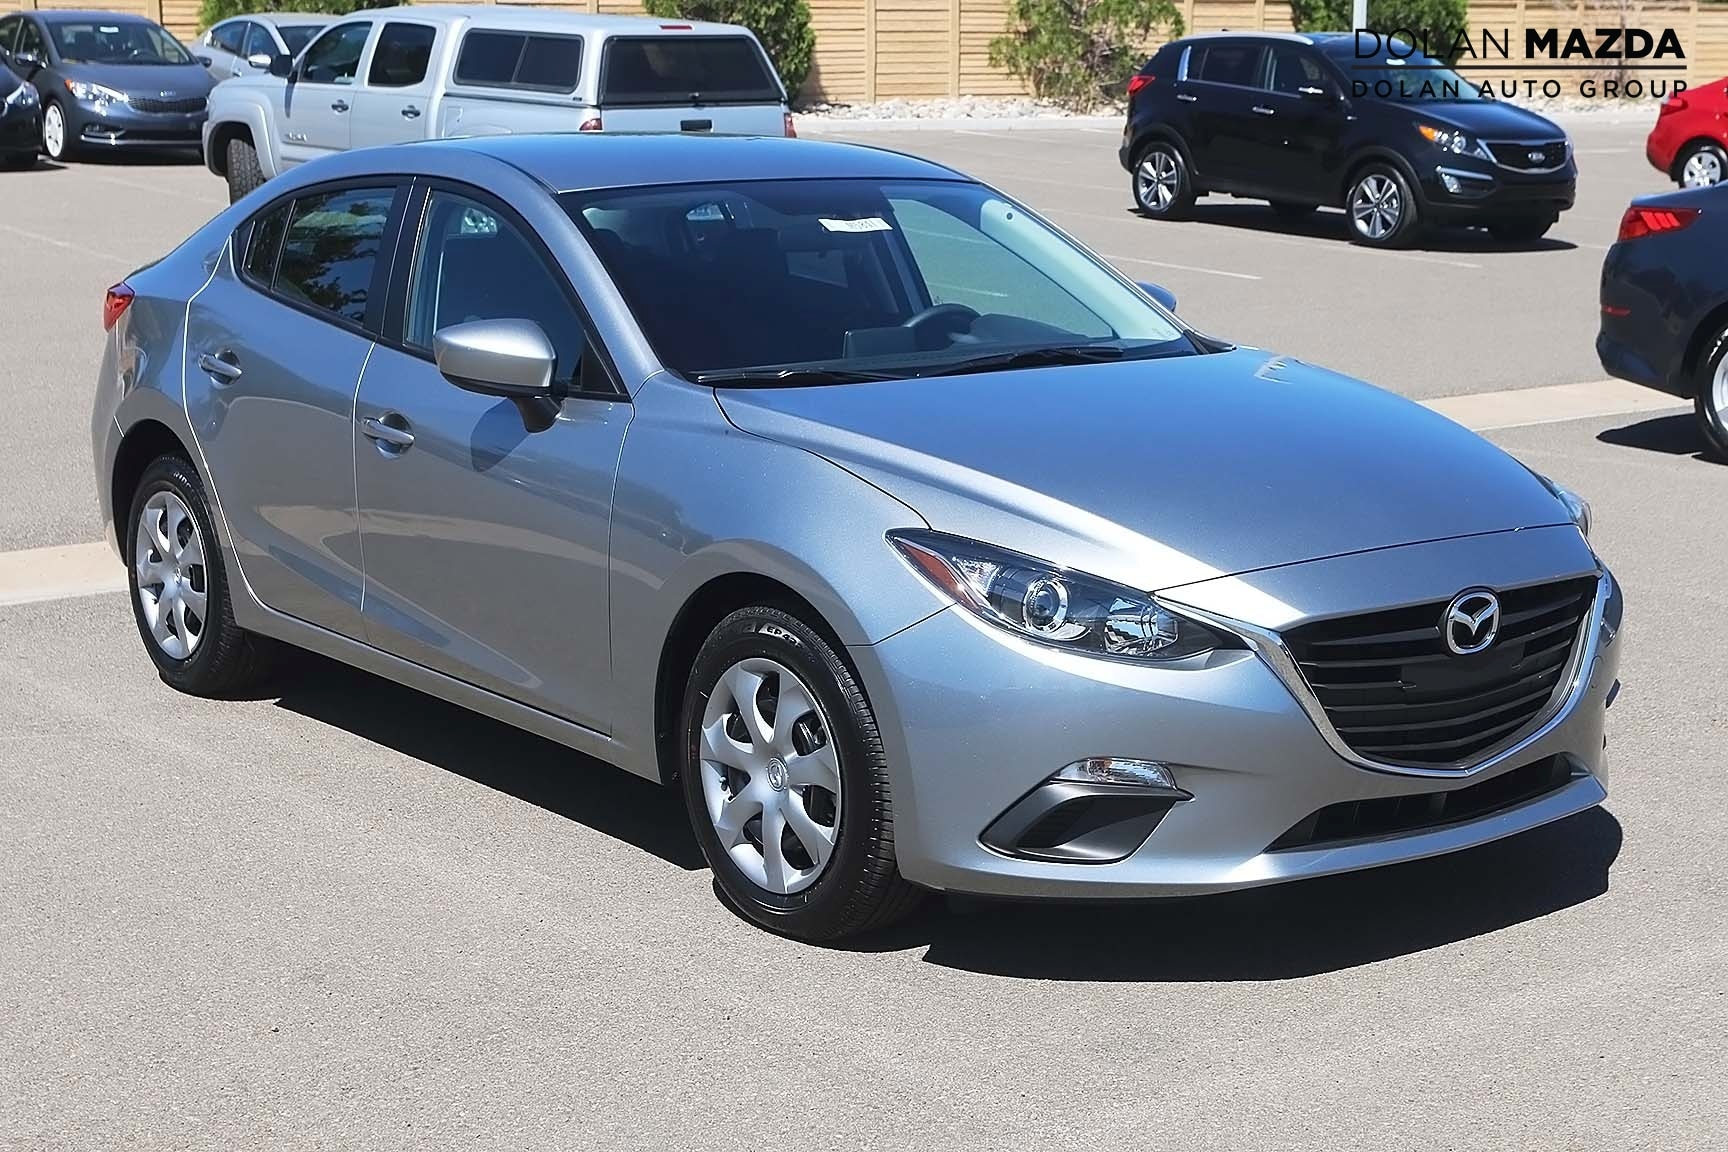 dolan mazda | 2015 mazda3 for  in reno